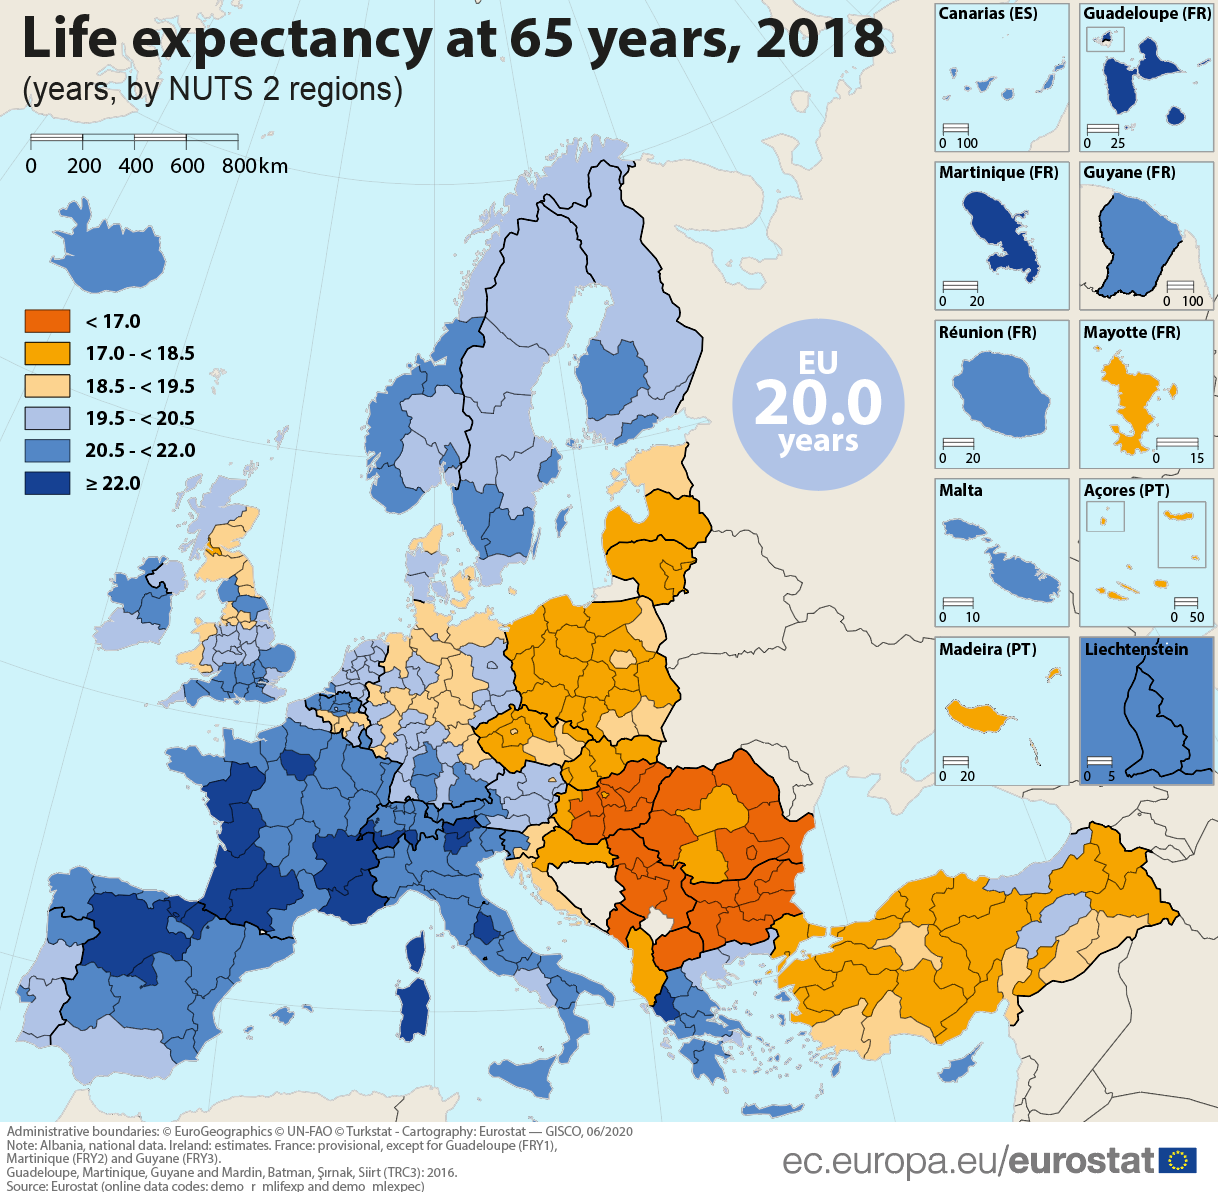 Life expectancy at 65 across EU regions, 2018